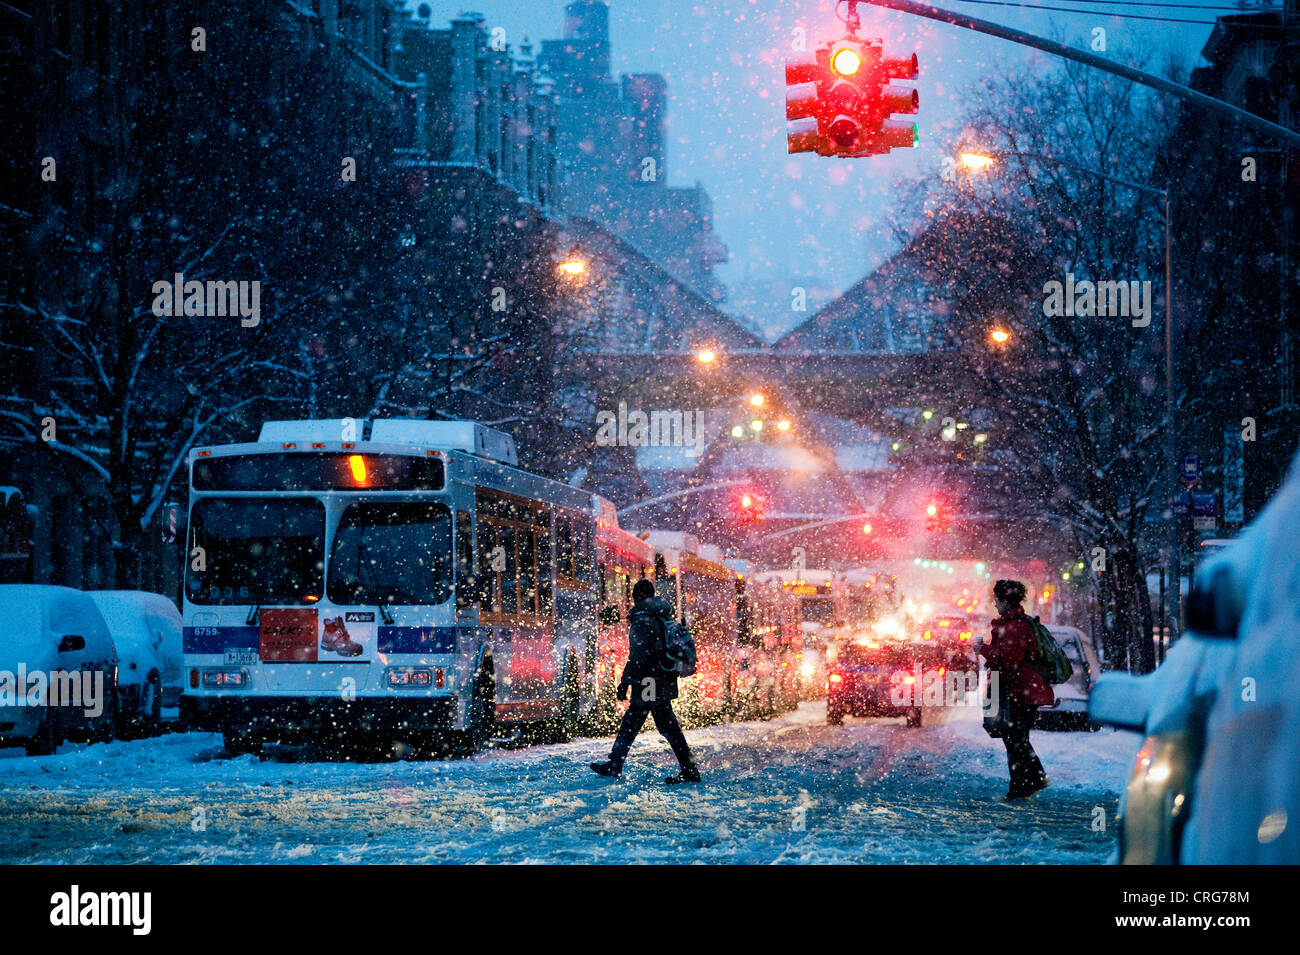 An early morning snow storm in upper Manhattan. - Stock Image